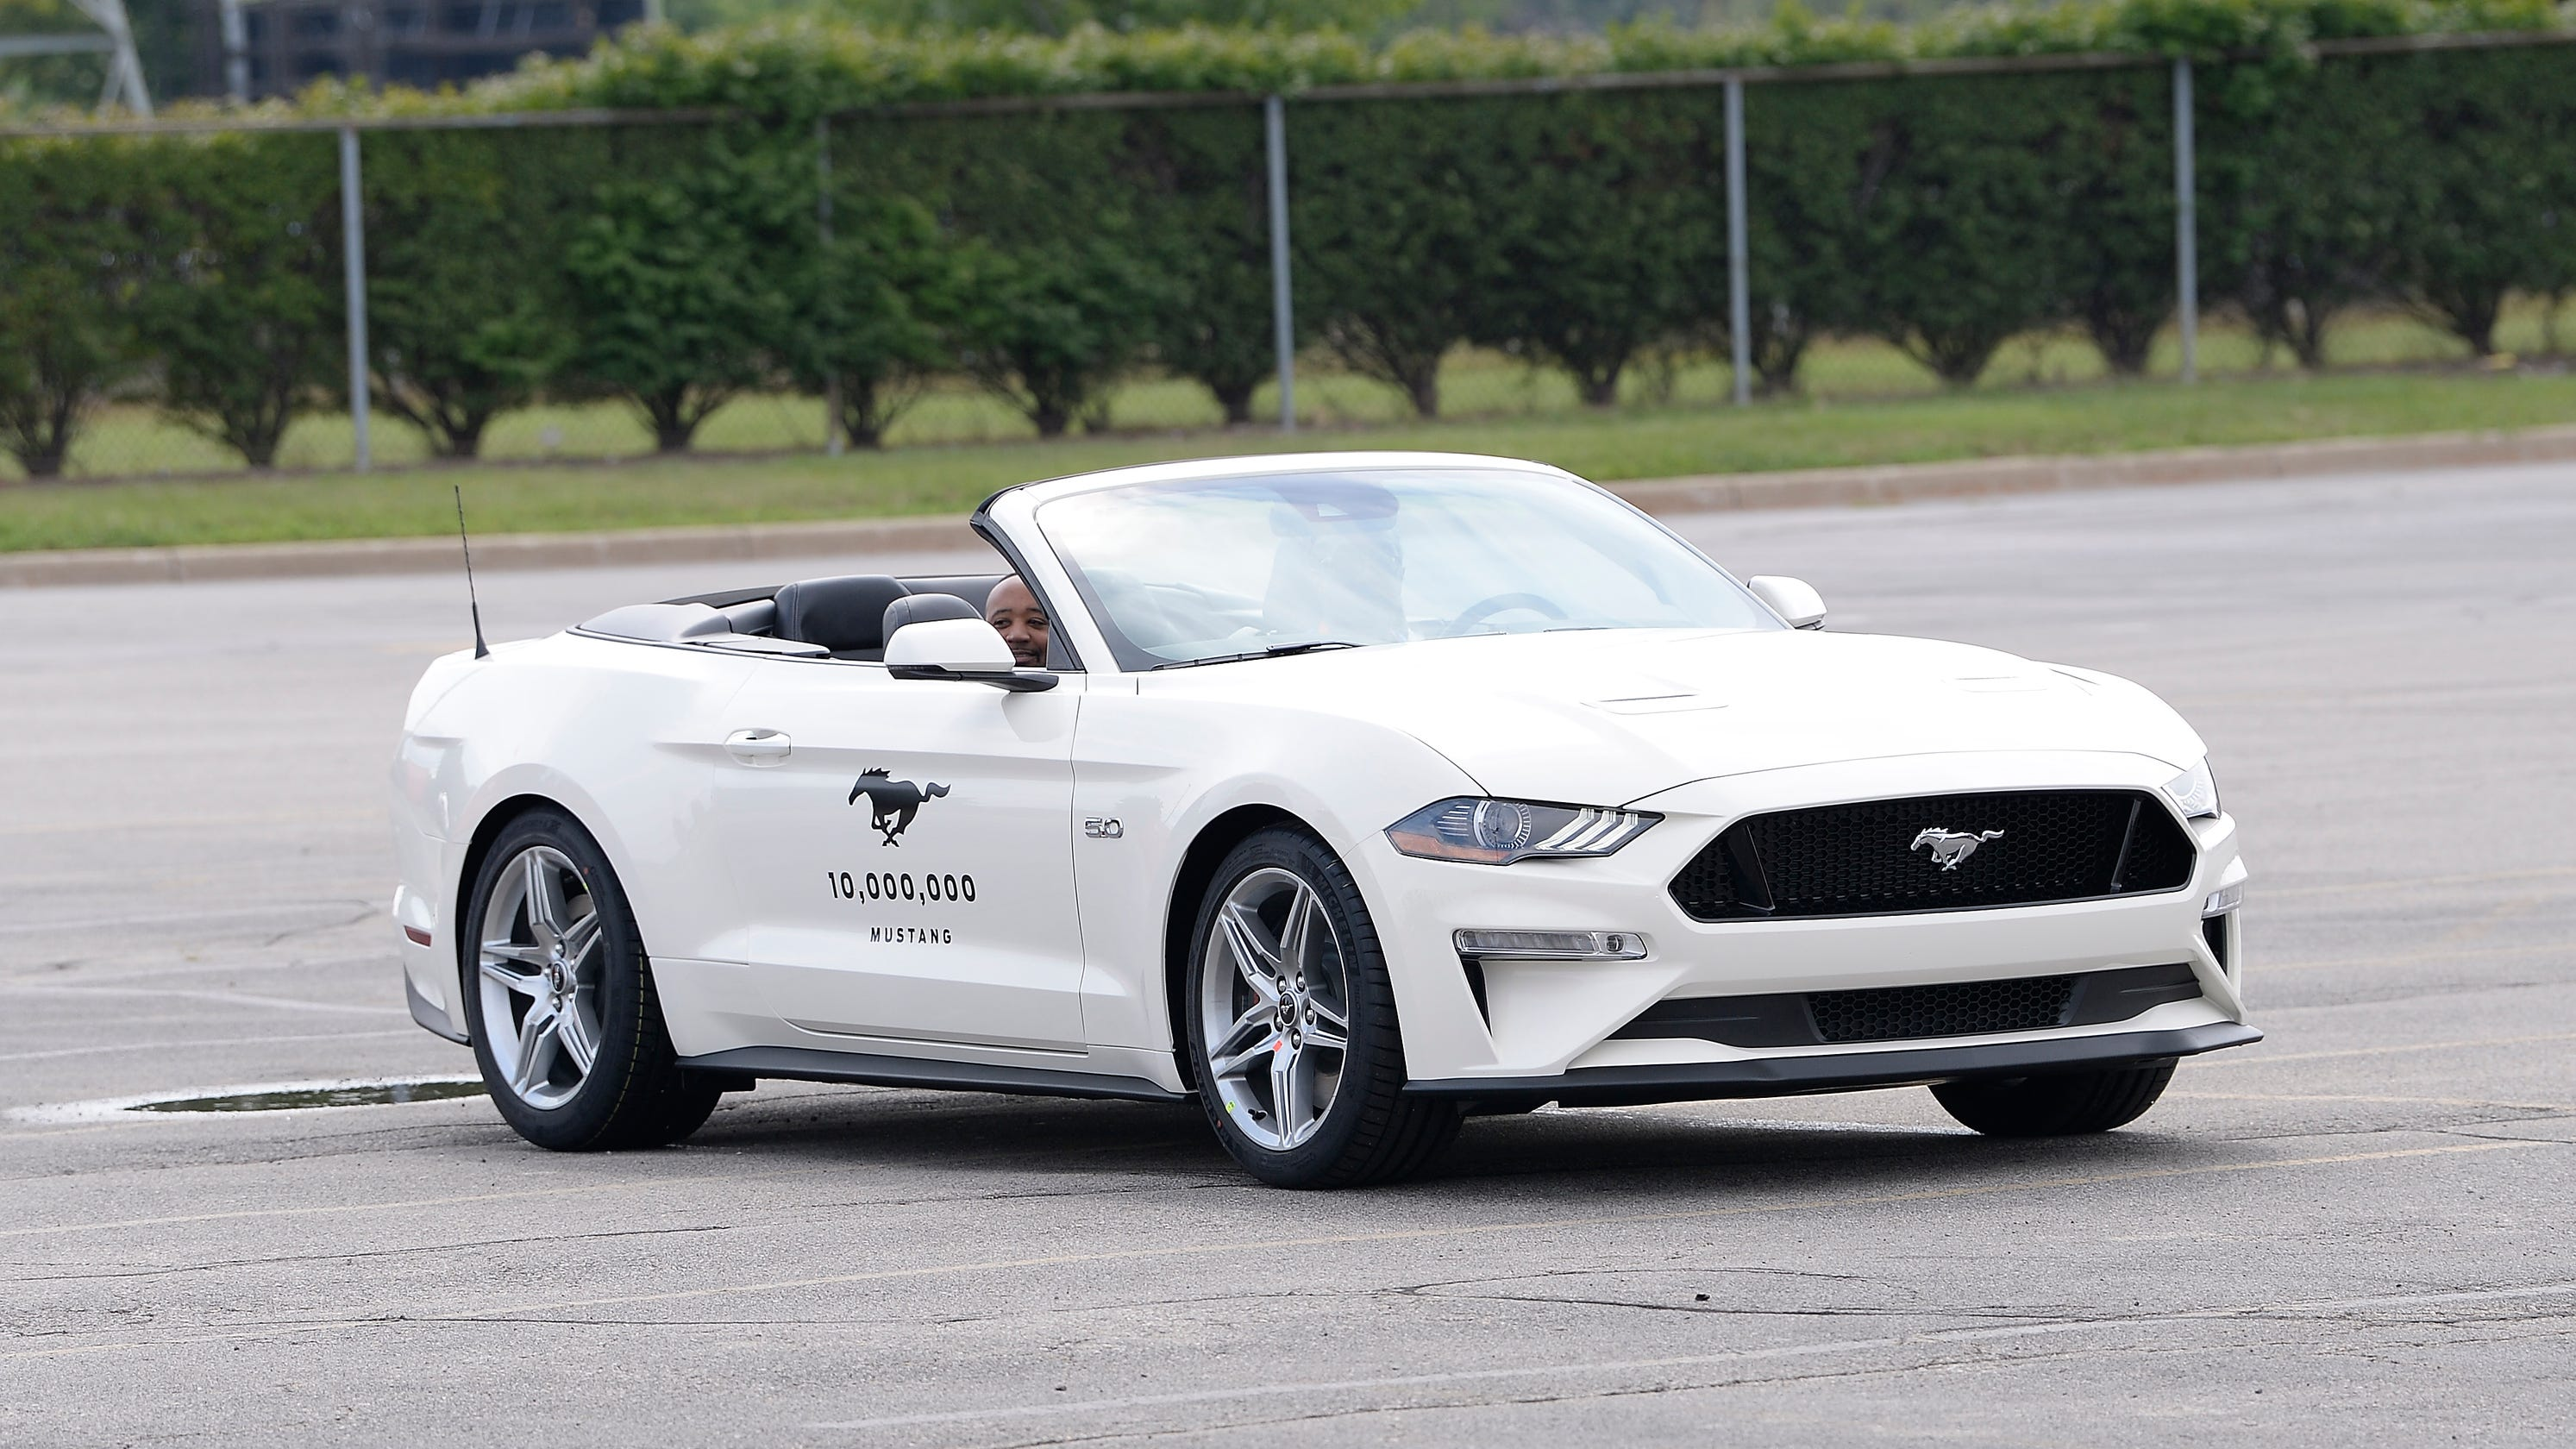 Ford mustang 10000 by ford celebrates 10 000 000th mustang